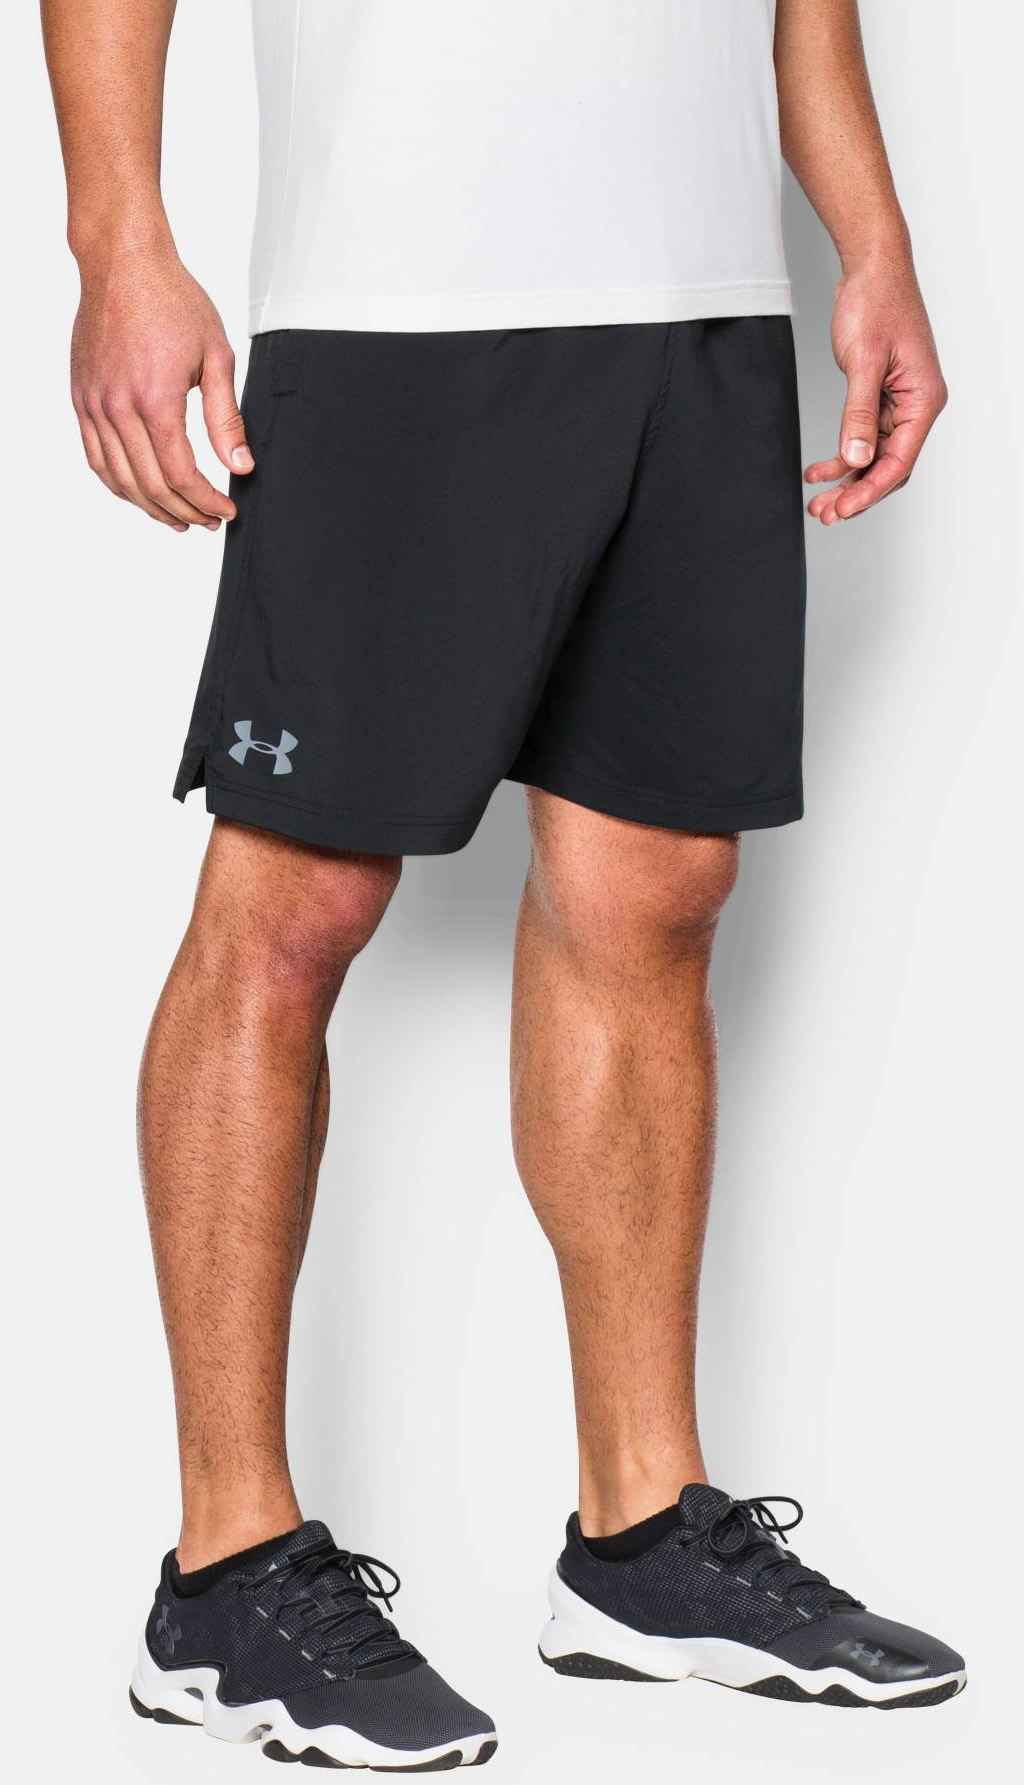 Check Out This Perfect Under Armour Gym Outfit For Men! 91305e727540